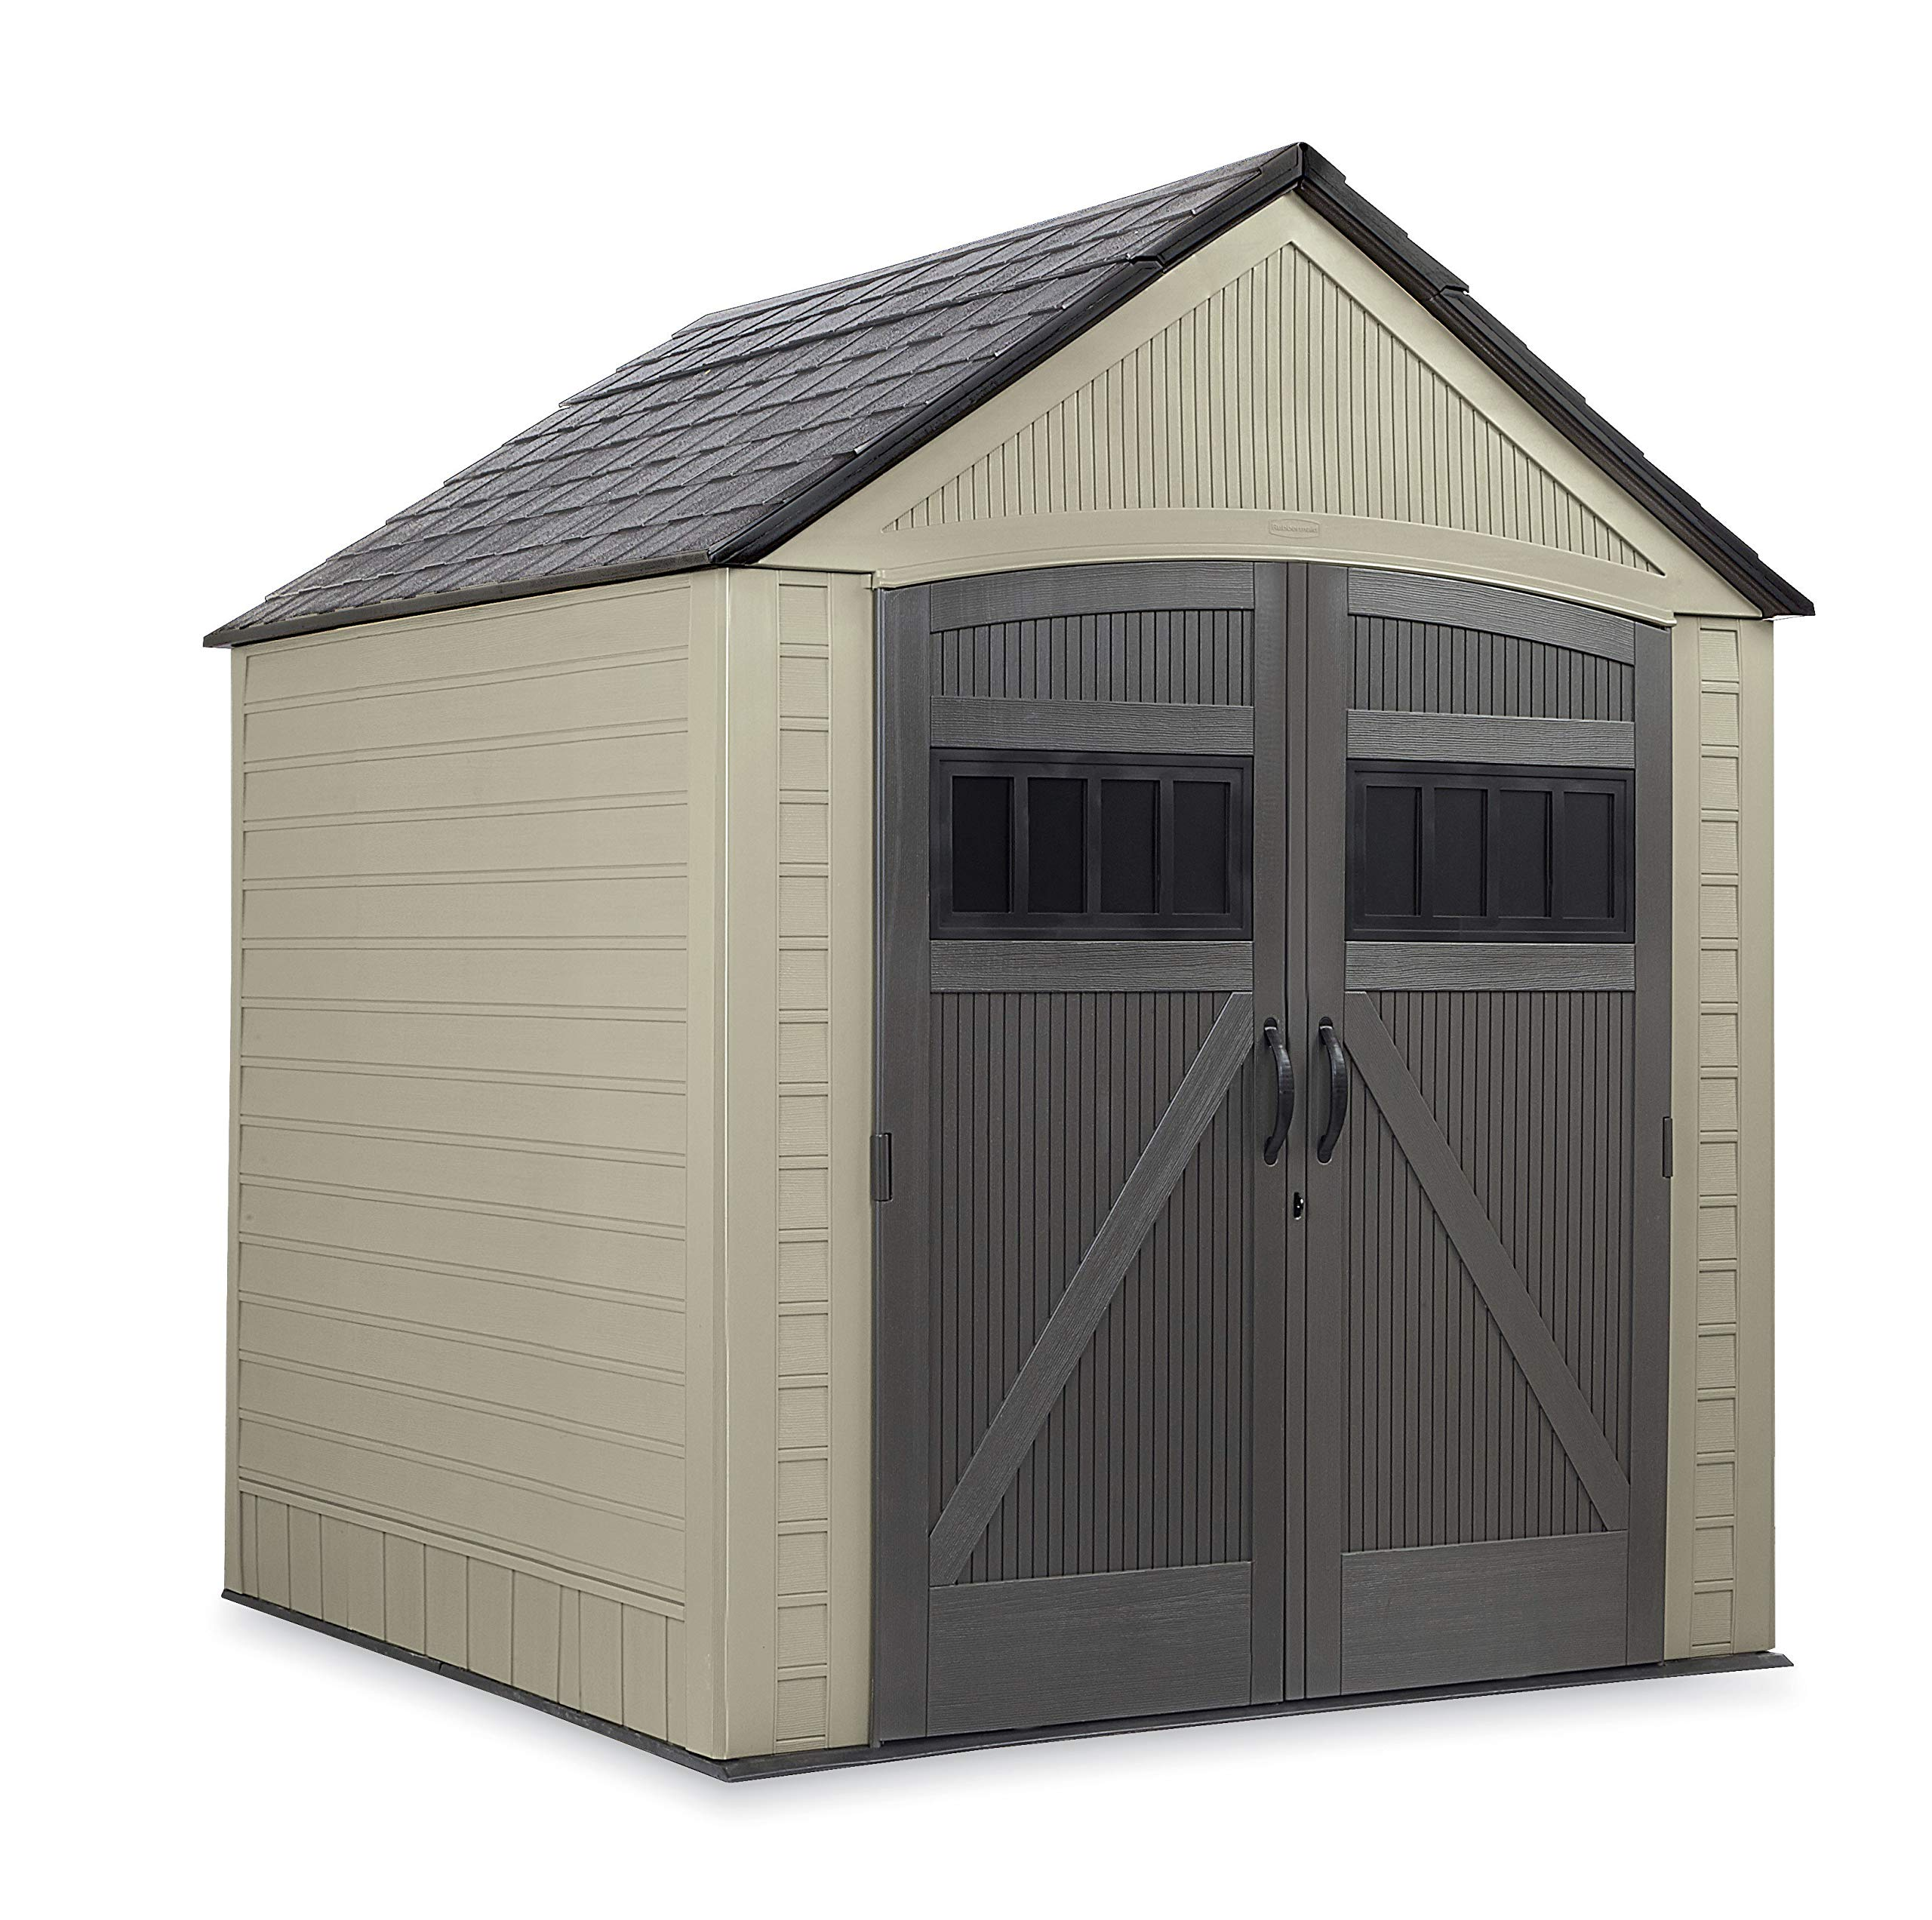 Rubbermaid Roughneck Storage Shed 7x7 Faint Maple and Brown